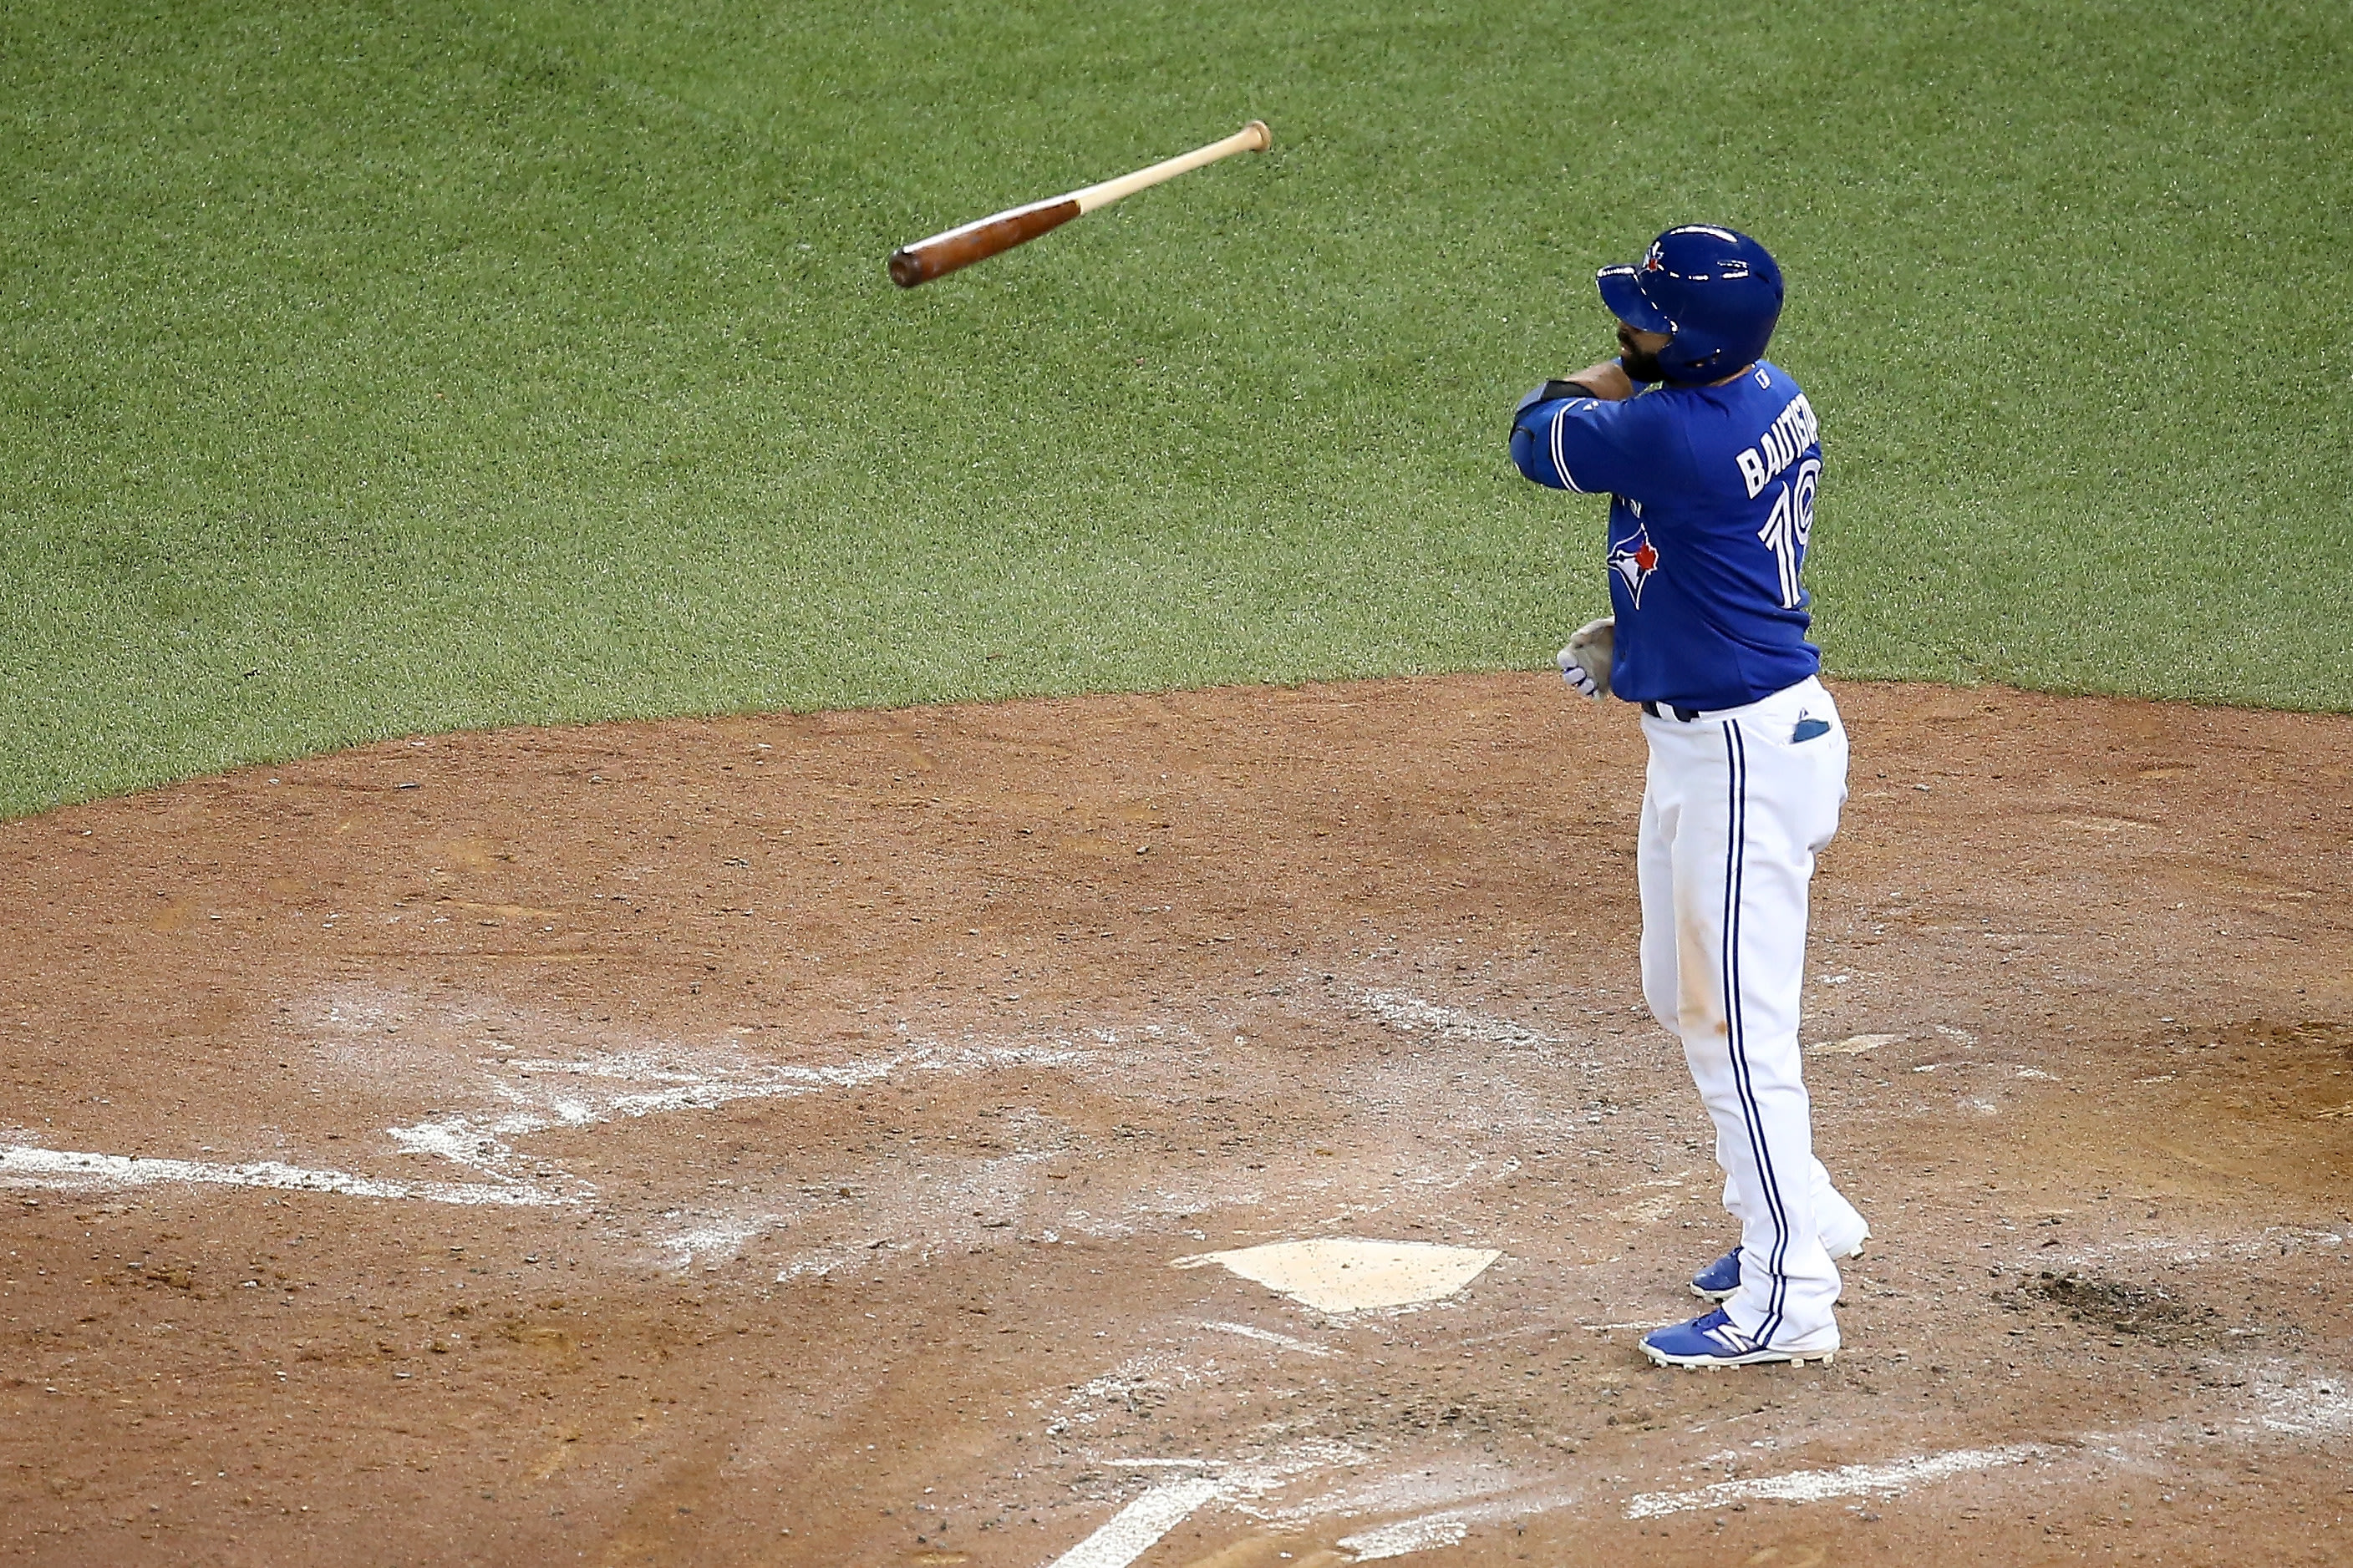 Jose Bautista's celebration after a series-winning home run is causing a firestorm in baseball